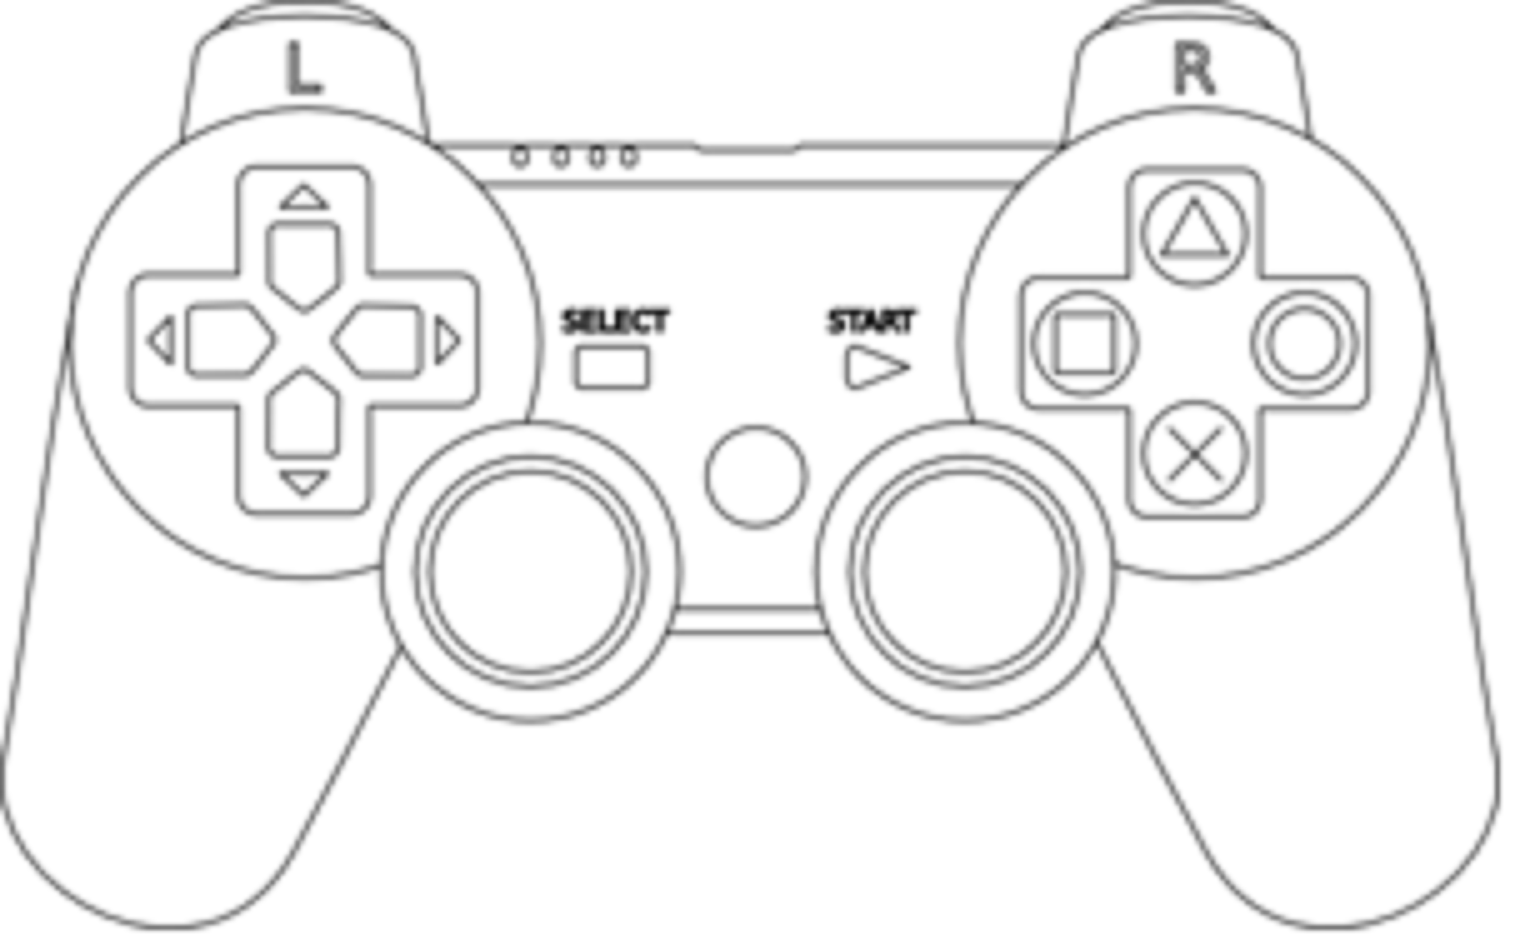 Game Controller Free Images At Clker